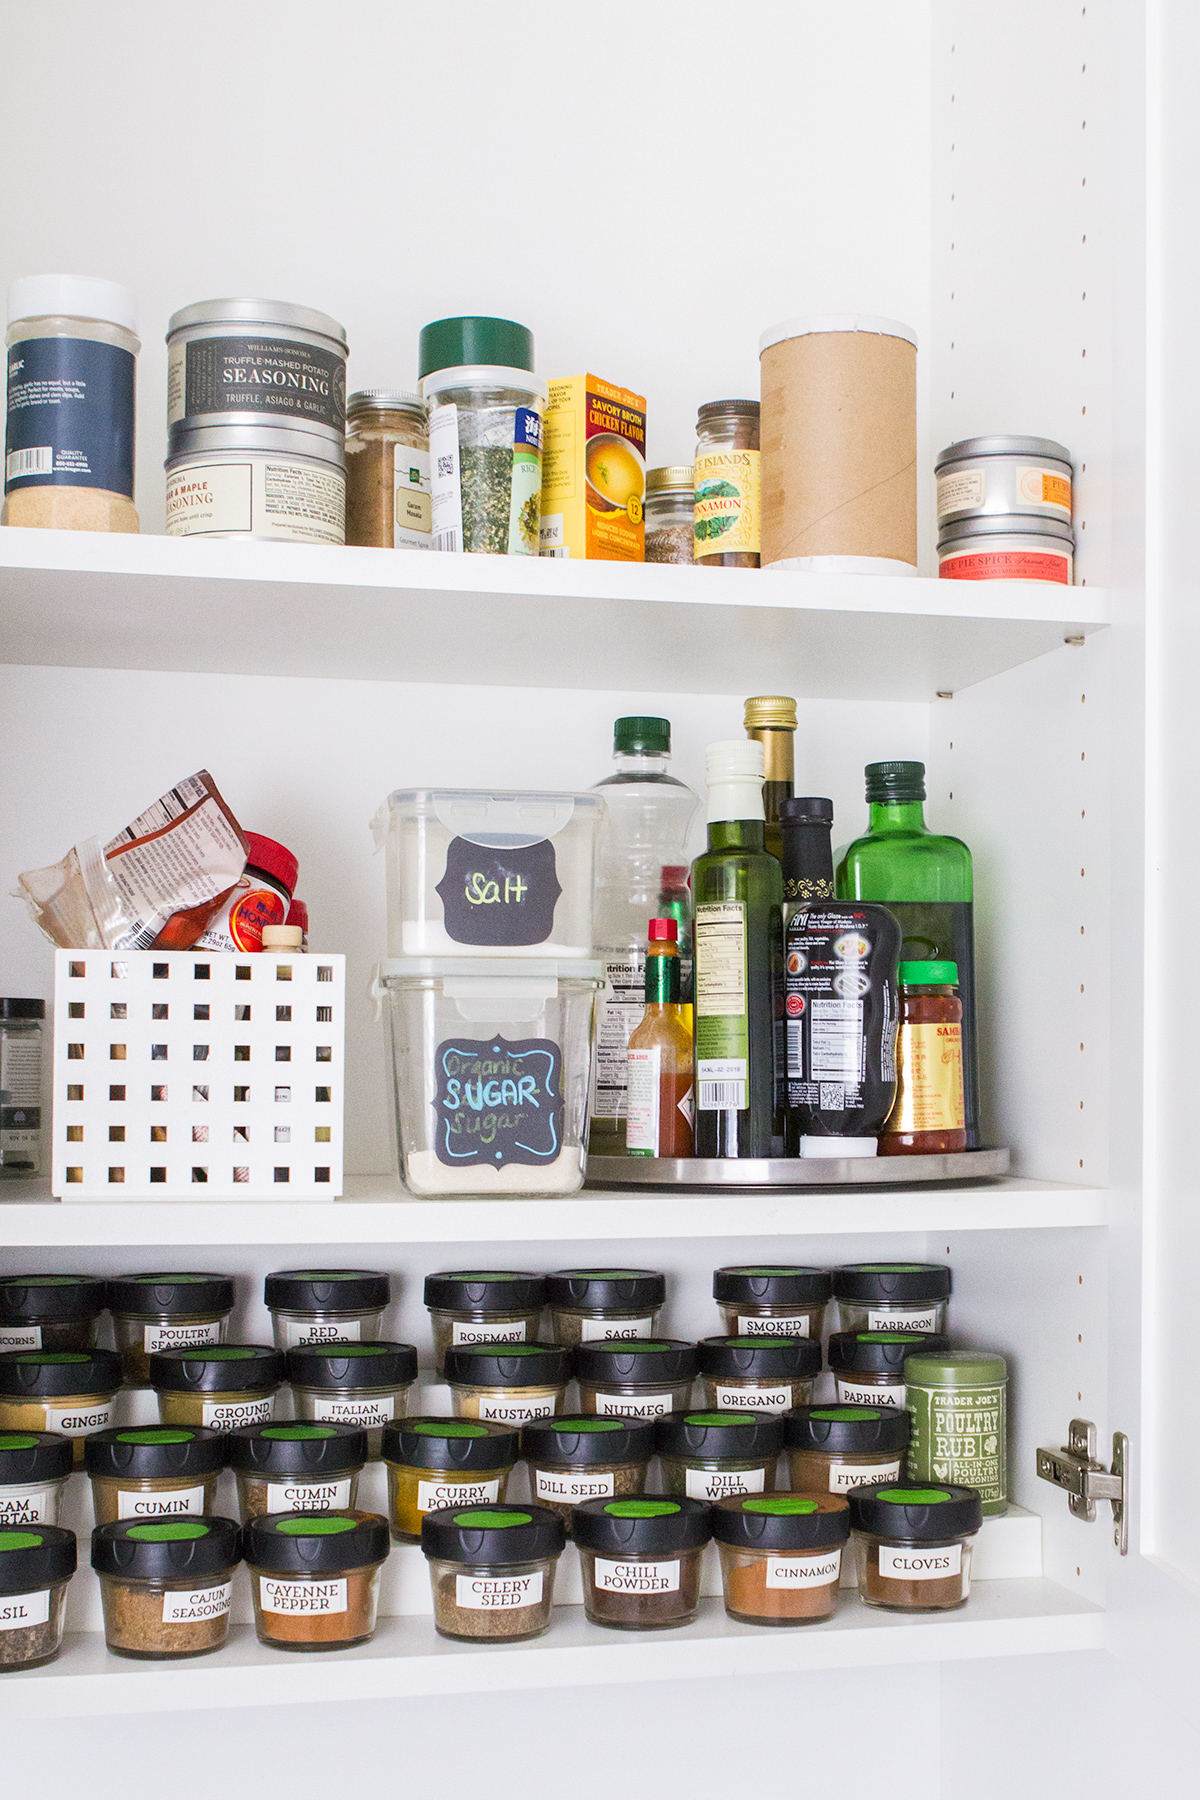 Great organization for spices in a kitchen cabinet.